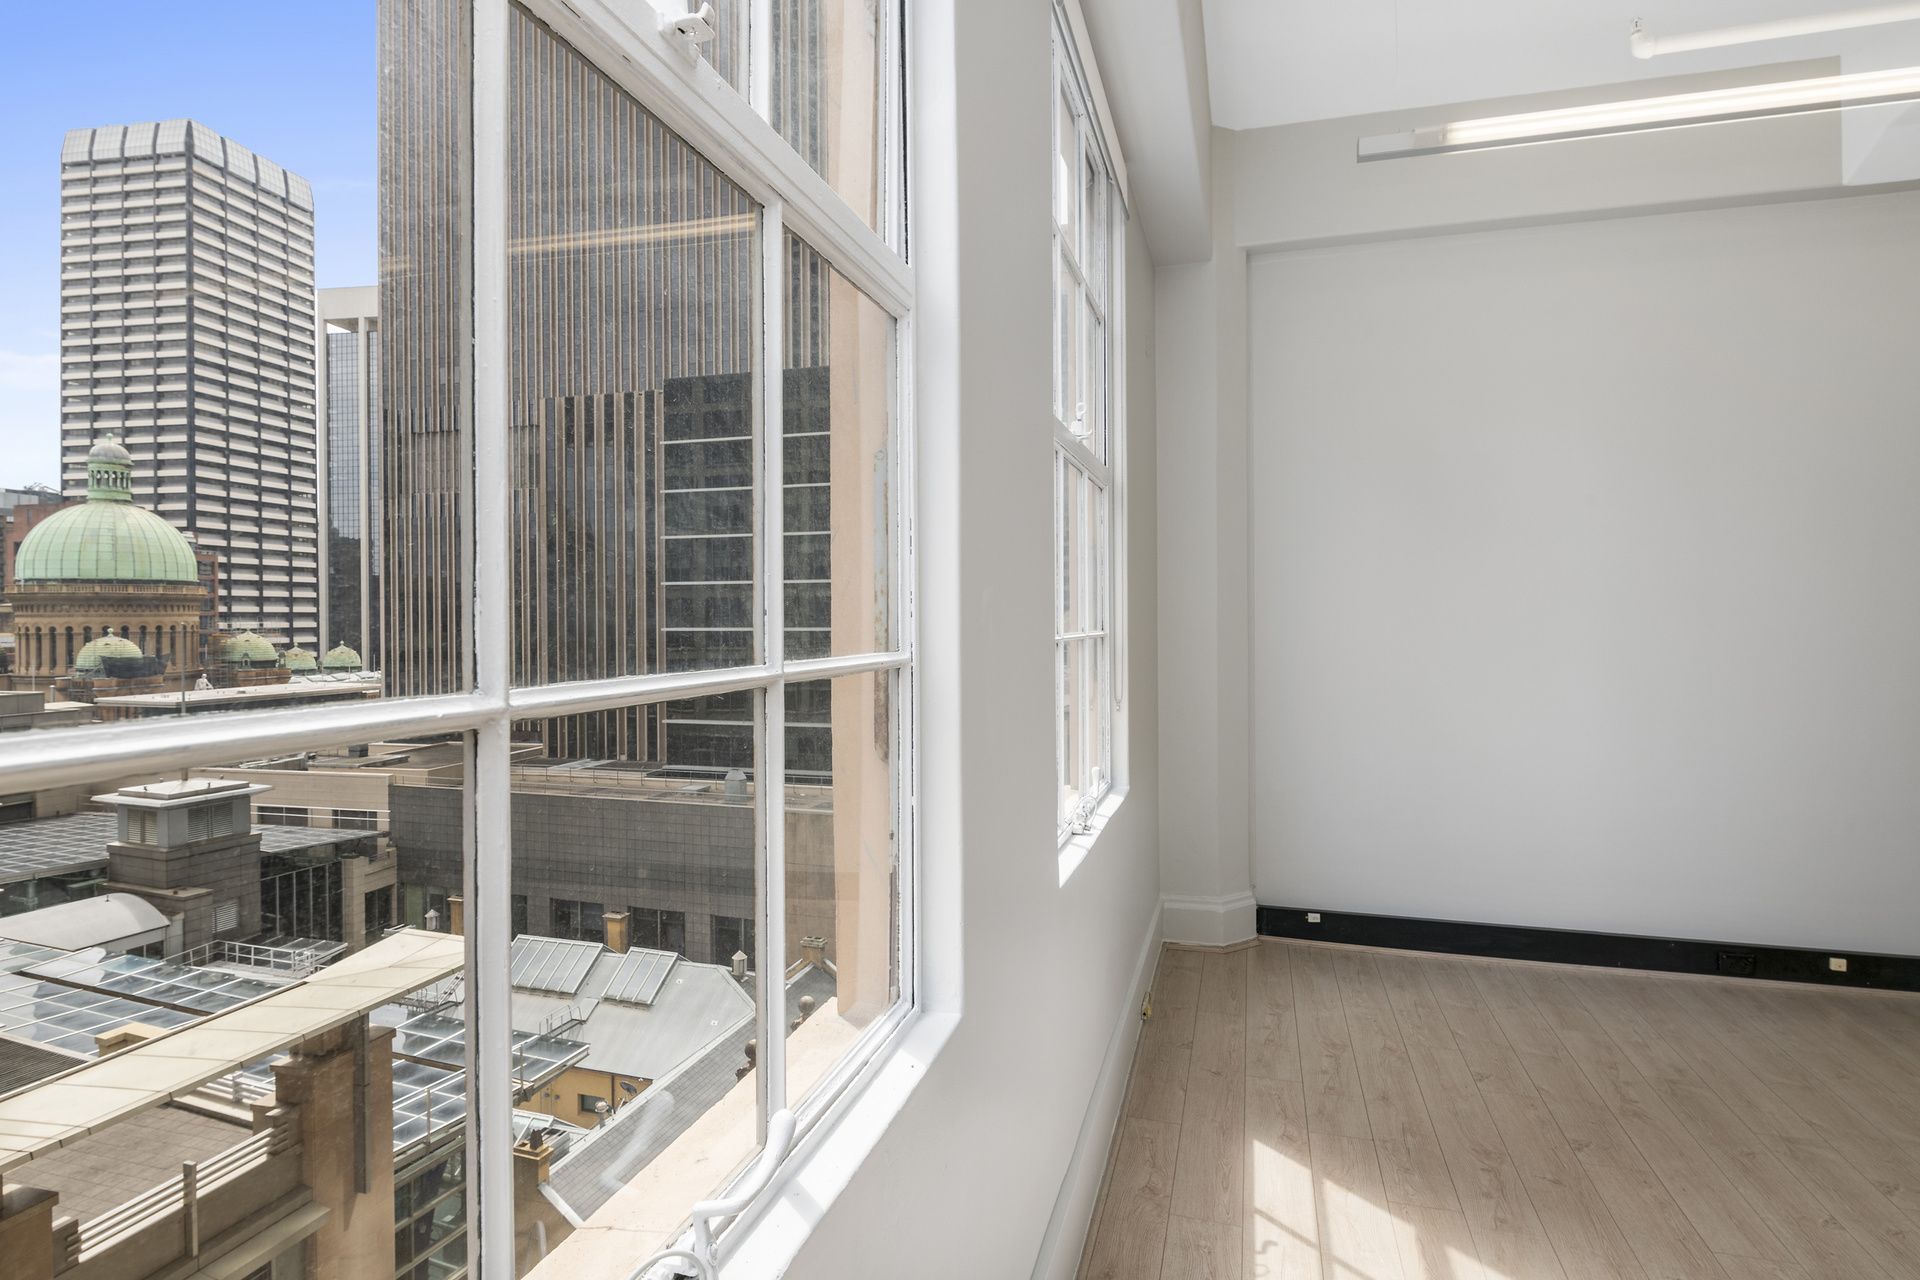 NEWLY REFURBISHED STYLISH & BRIGHT SUITE FACING PITT ST - VACANT POSSESSION